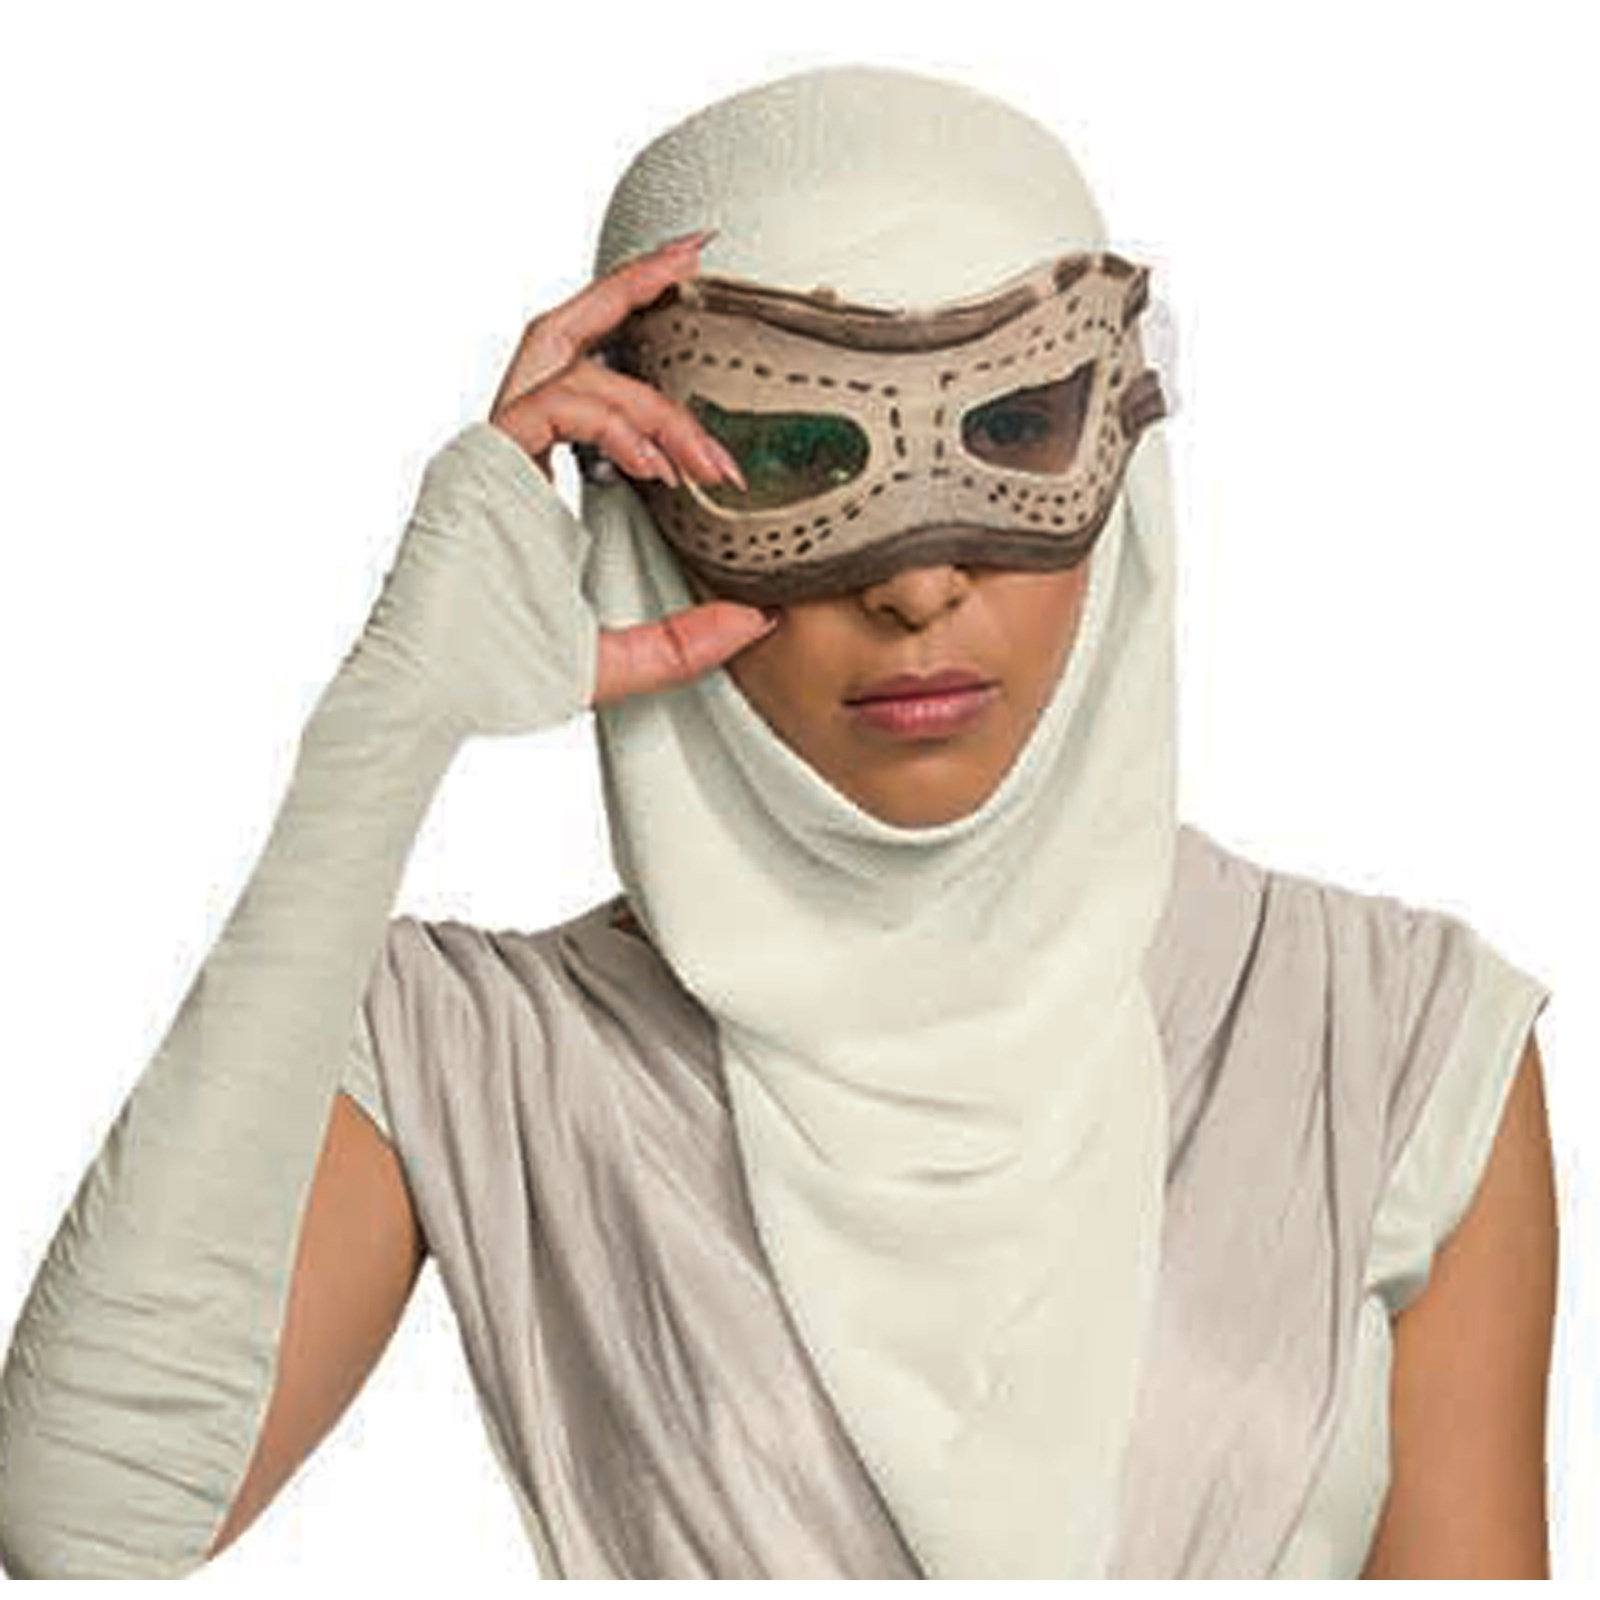 Glass Mask Episode 1: Rey Star Wars, Memories And The Force On Pinterest